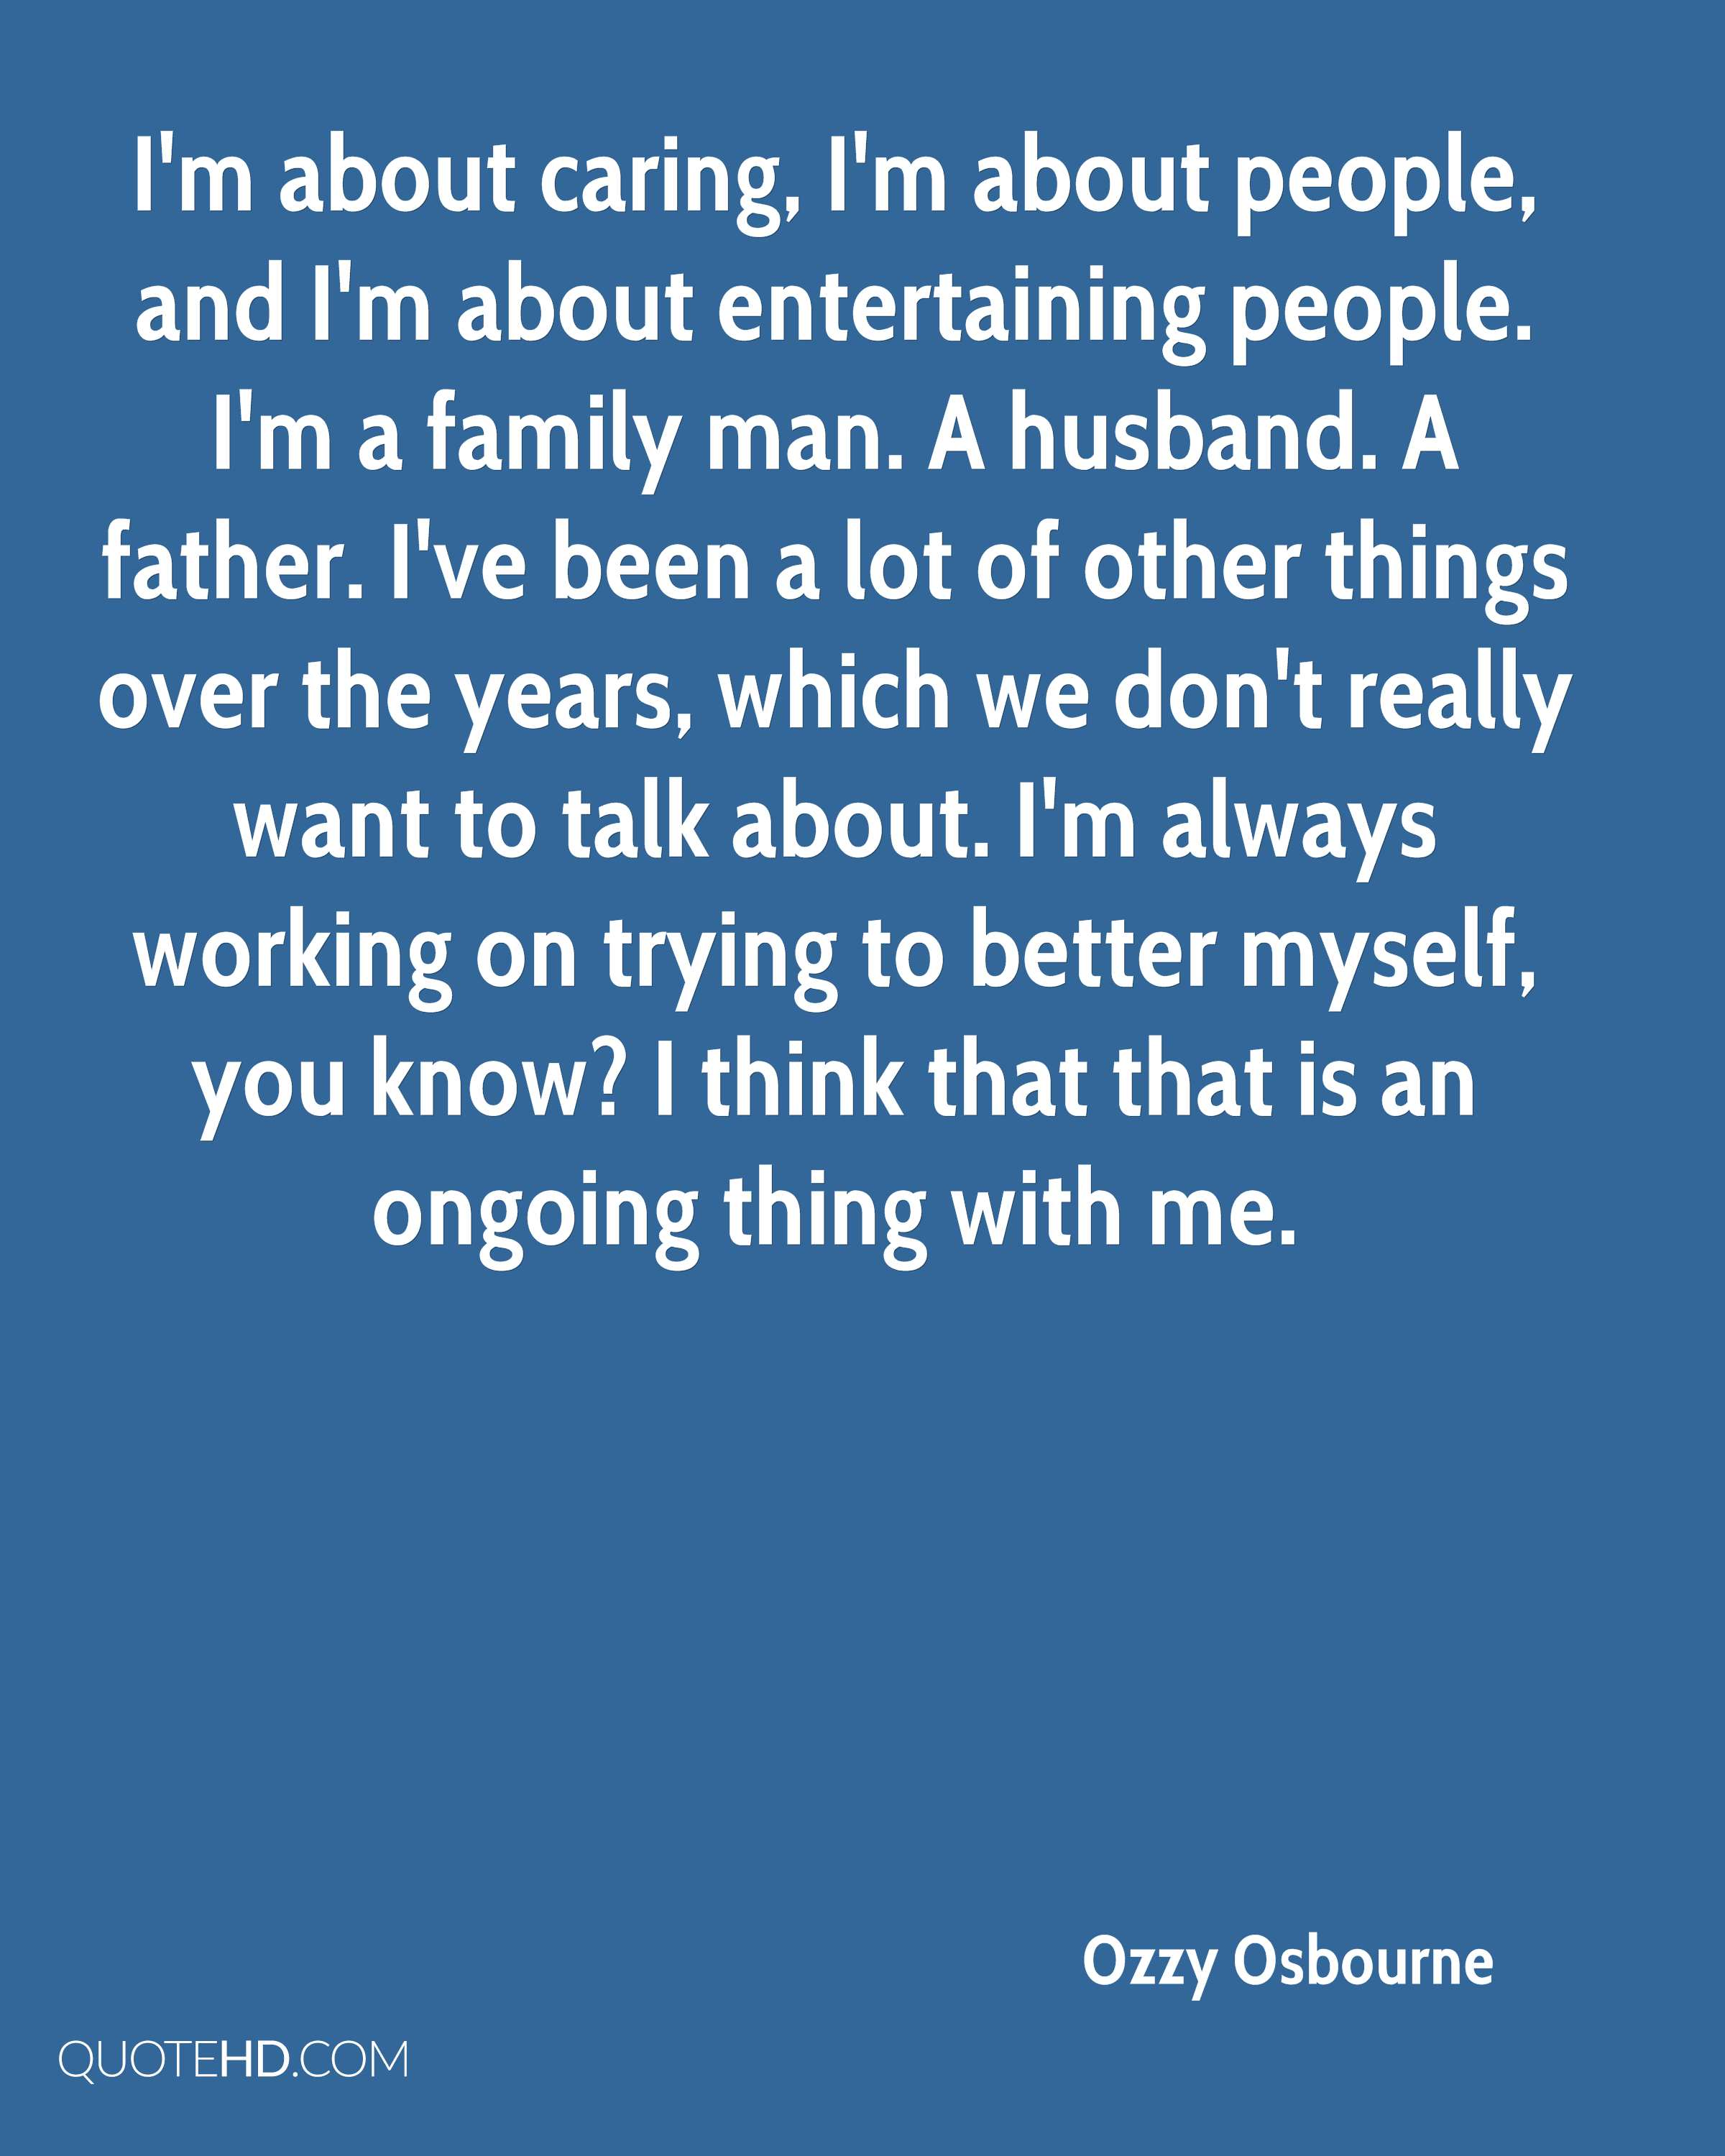 I'm about caring, I'm about people, and I'm about entertaining people. I'm a family man. A husband. A father. I've been a lot of other things over the years, which we don't really want to talk about. I'm always working on trying to better myself, you know? I think that that is an ongoing thing with me.